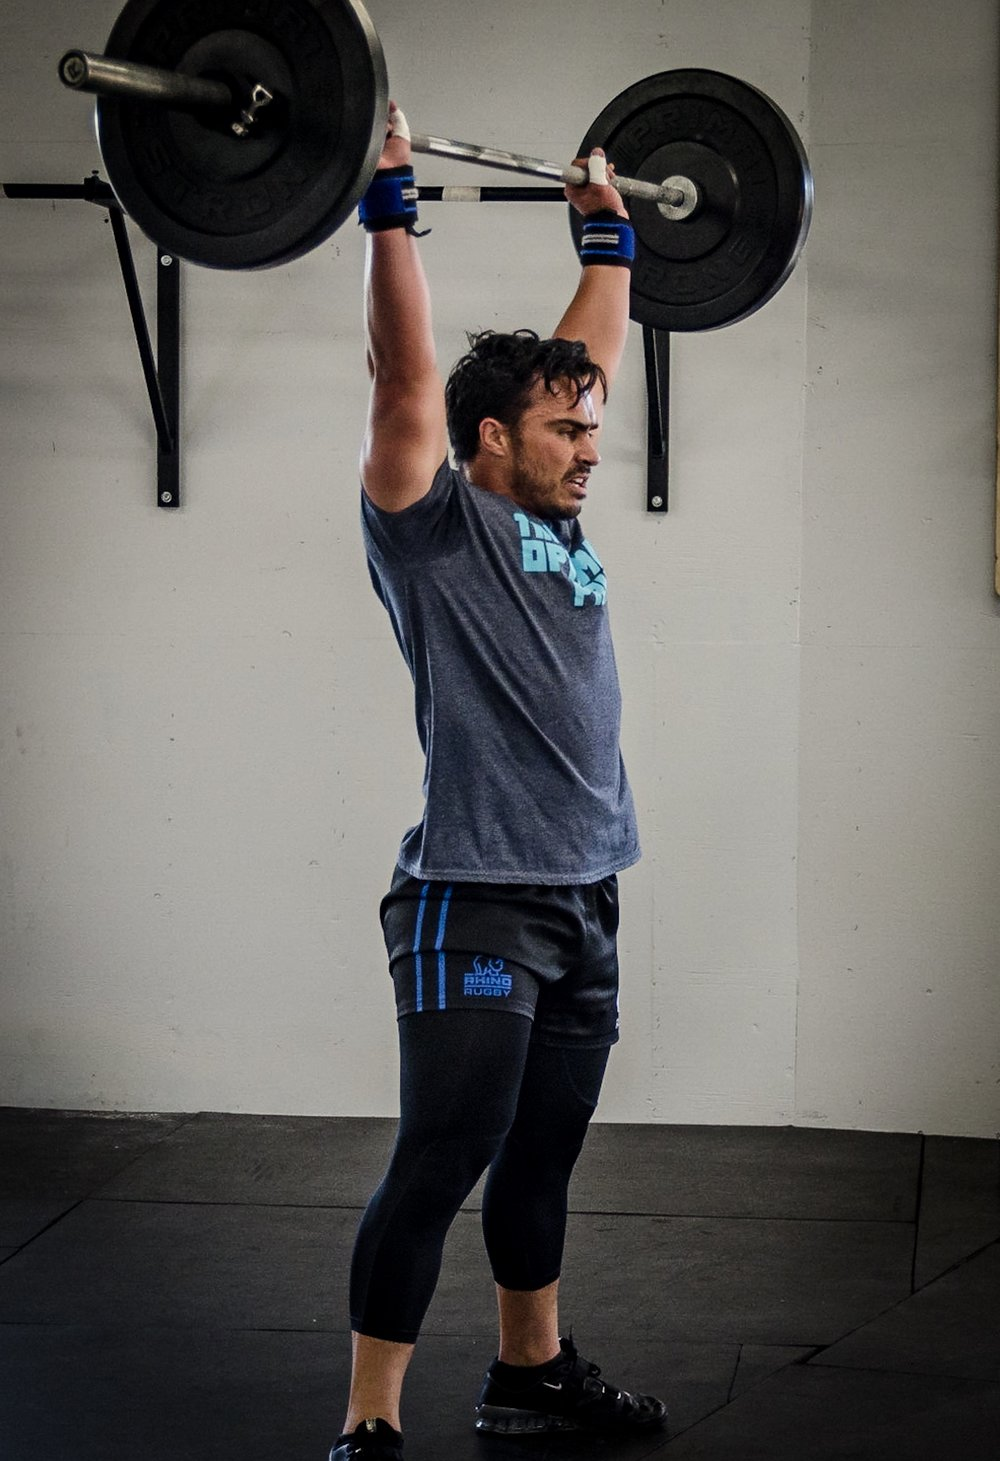 RAY - LCSW / Certified Strength and Conditioning Specialist / USA Powerlifting Club Coach / CrossFit Level OneRay was a collegiate, All-American and professional MLR rugby player. He started CrossFit as a way to stay in shape and maintain his competitive edge as he pursues his career as a mental health therapist. Ray also trains and competes as a powerlifter and loves strength based WODs. He is currently pursuing his second Master's degree, this time in Sports Conditioning and Performance from SUU. He enjoys singing, deadlifting, hiking, mountain biking, traveling with family, eating good food and body surfing. You might recognize him as the voice behind The Optimal Prime Podcast with Ray. Ray loves to coach because he is able to share and help other people experience the benefits of physical fitness. As a gym owner he is excited to build the best gym in Southern Utah in order to help his community with their fitness and life goals.